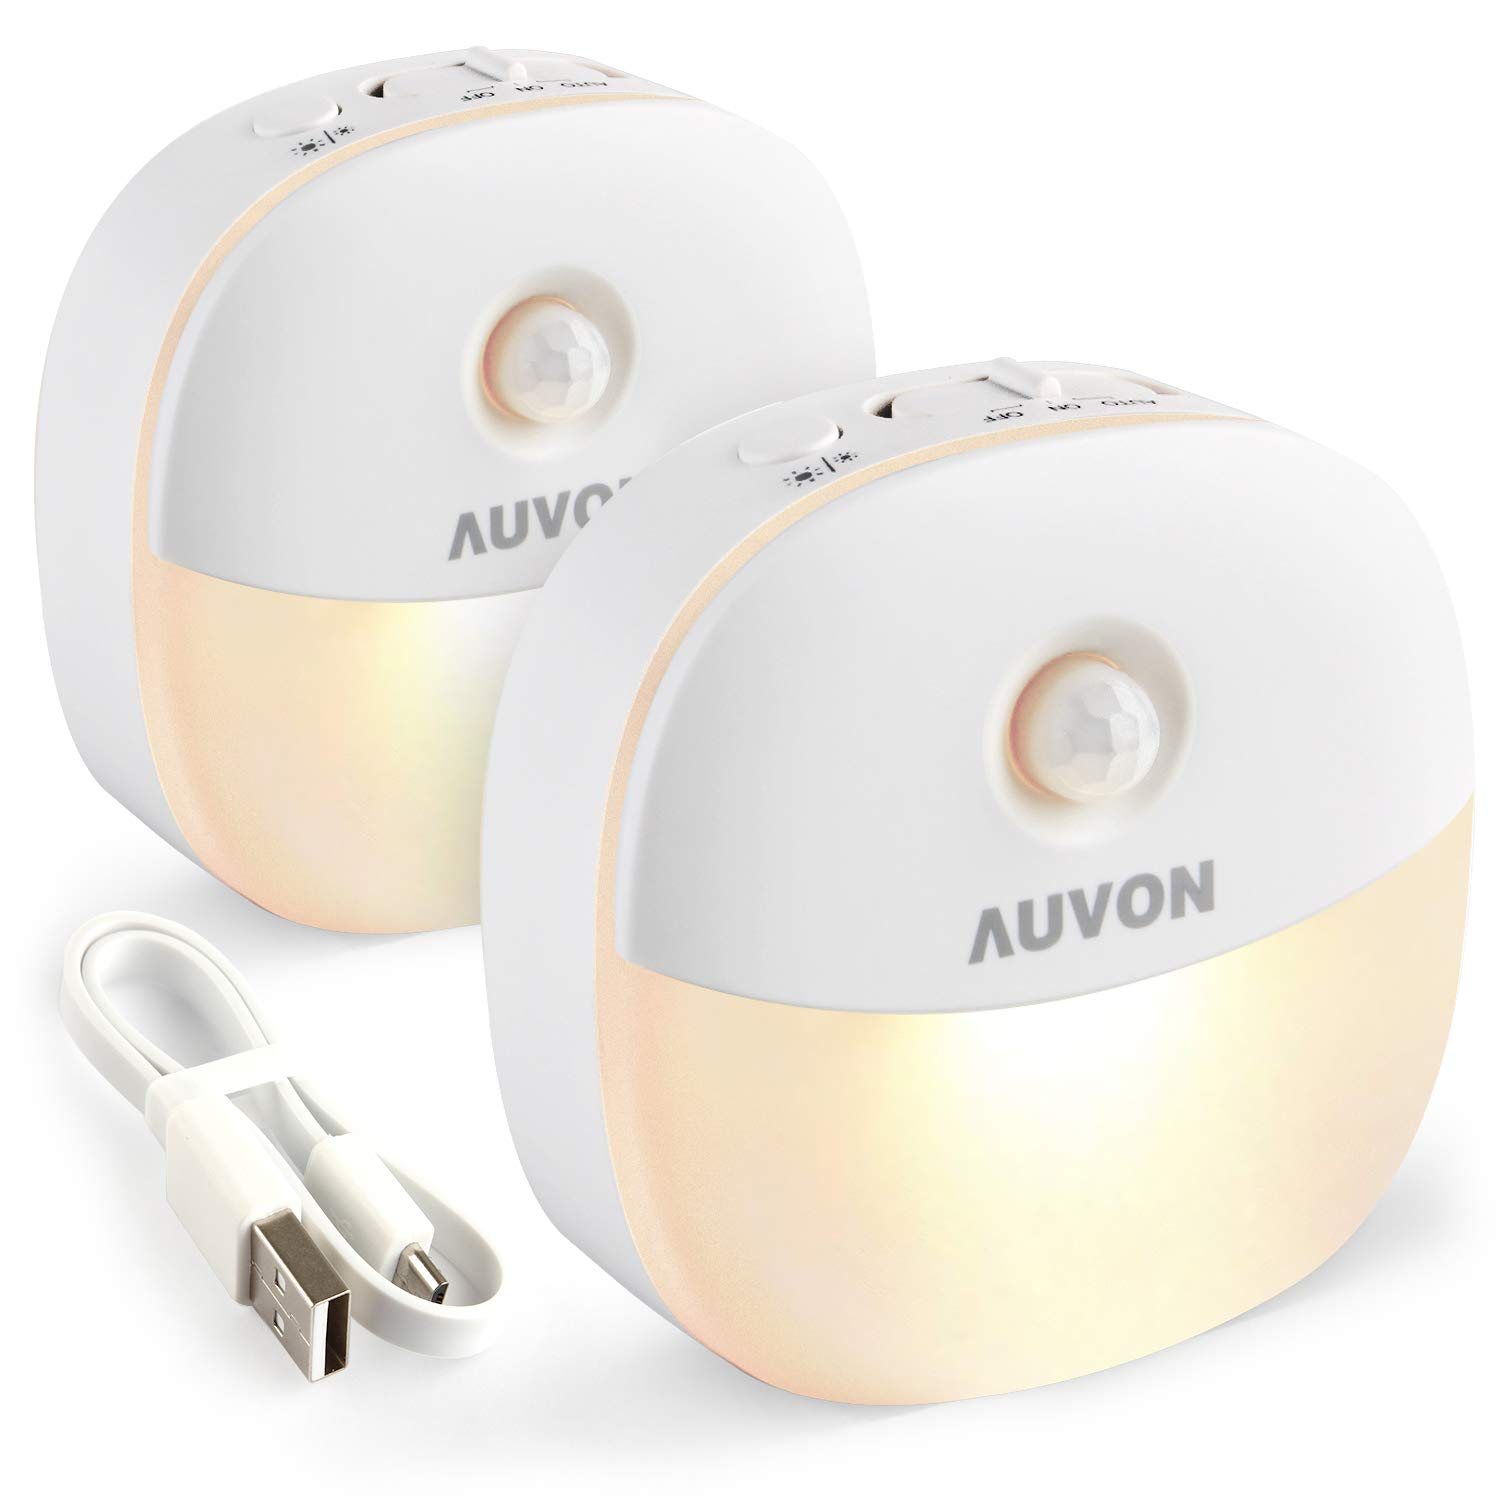 AUVON Rechargeable Motion Sensor Night Light, LED Stick-On Nightlight with Dusk to Dawn Sensor, Motion Sensor (Passive Infrared Technology), Adjustable Brightness for Kids, Moms, The Elderly, 2-Pack